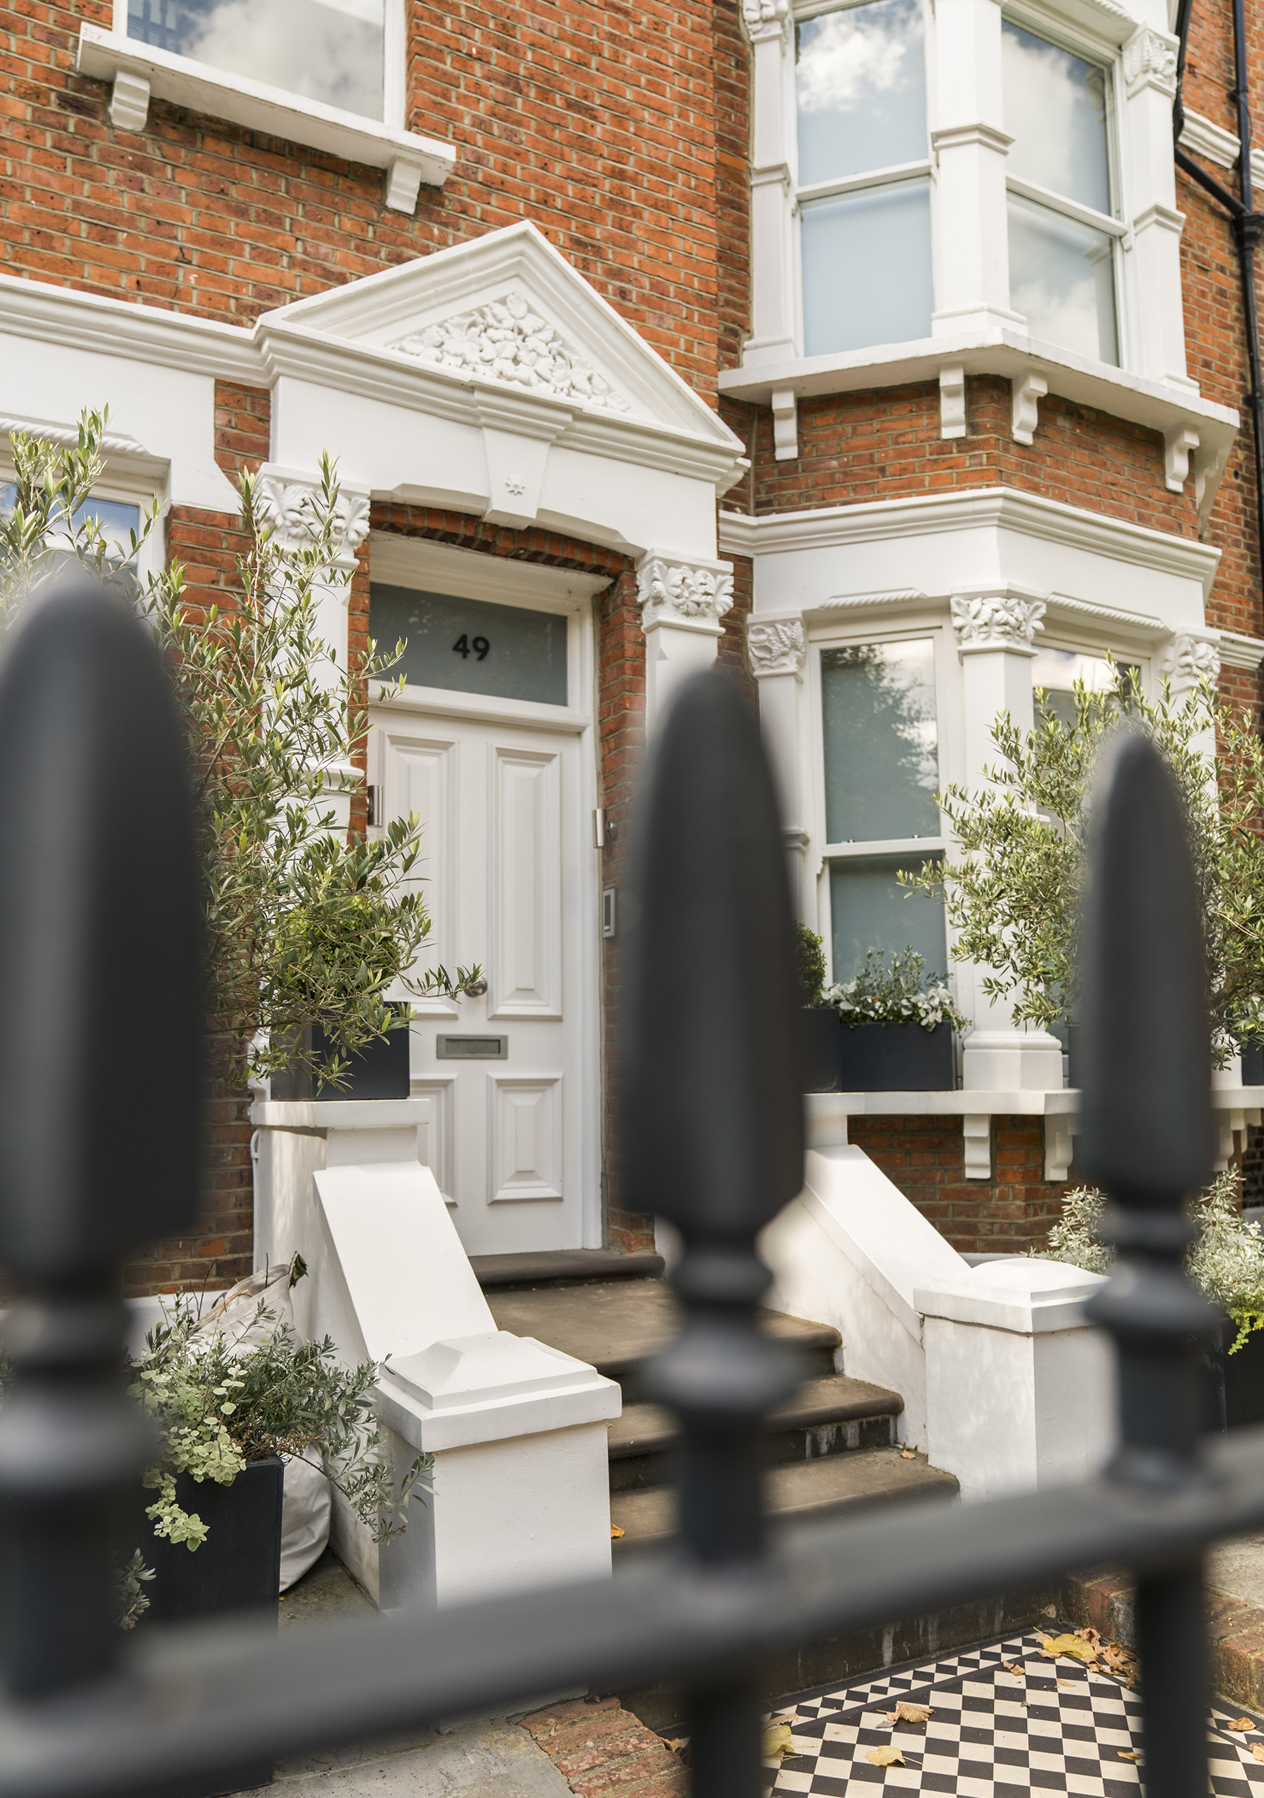 A red brick Edwardian house with a white front foor with a black and white tiled stairs